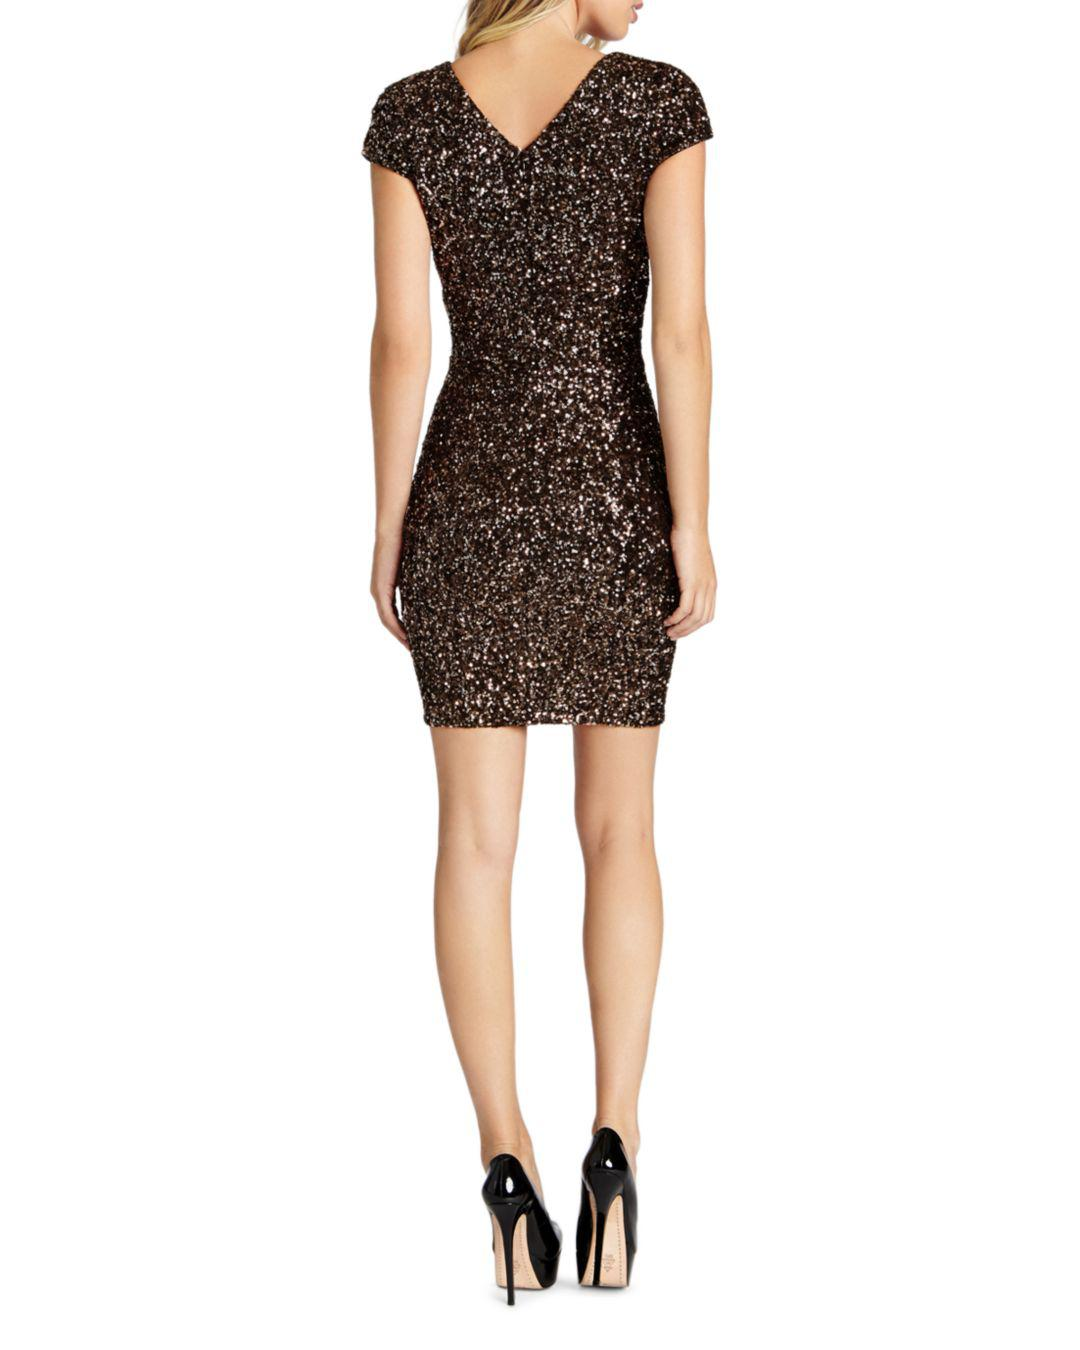 0afee922e504f Lyst - Dress The Population Zoe Sequined Mini Dress